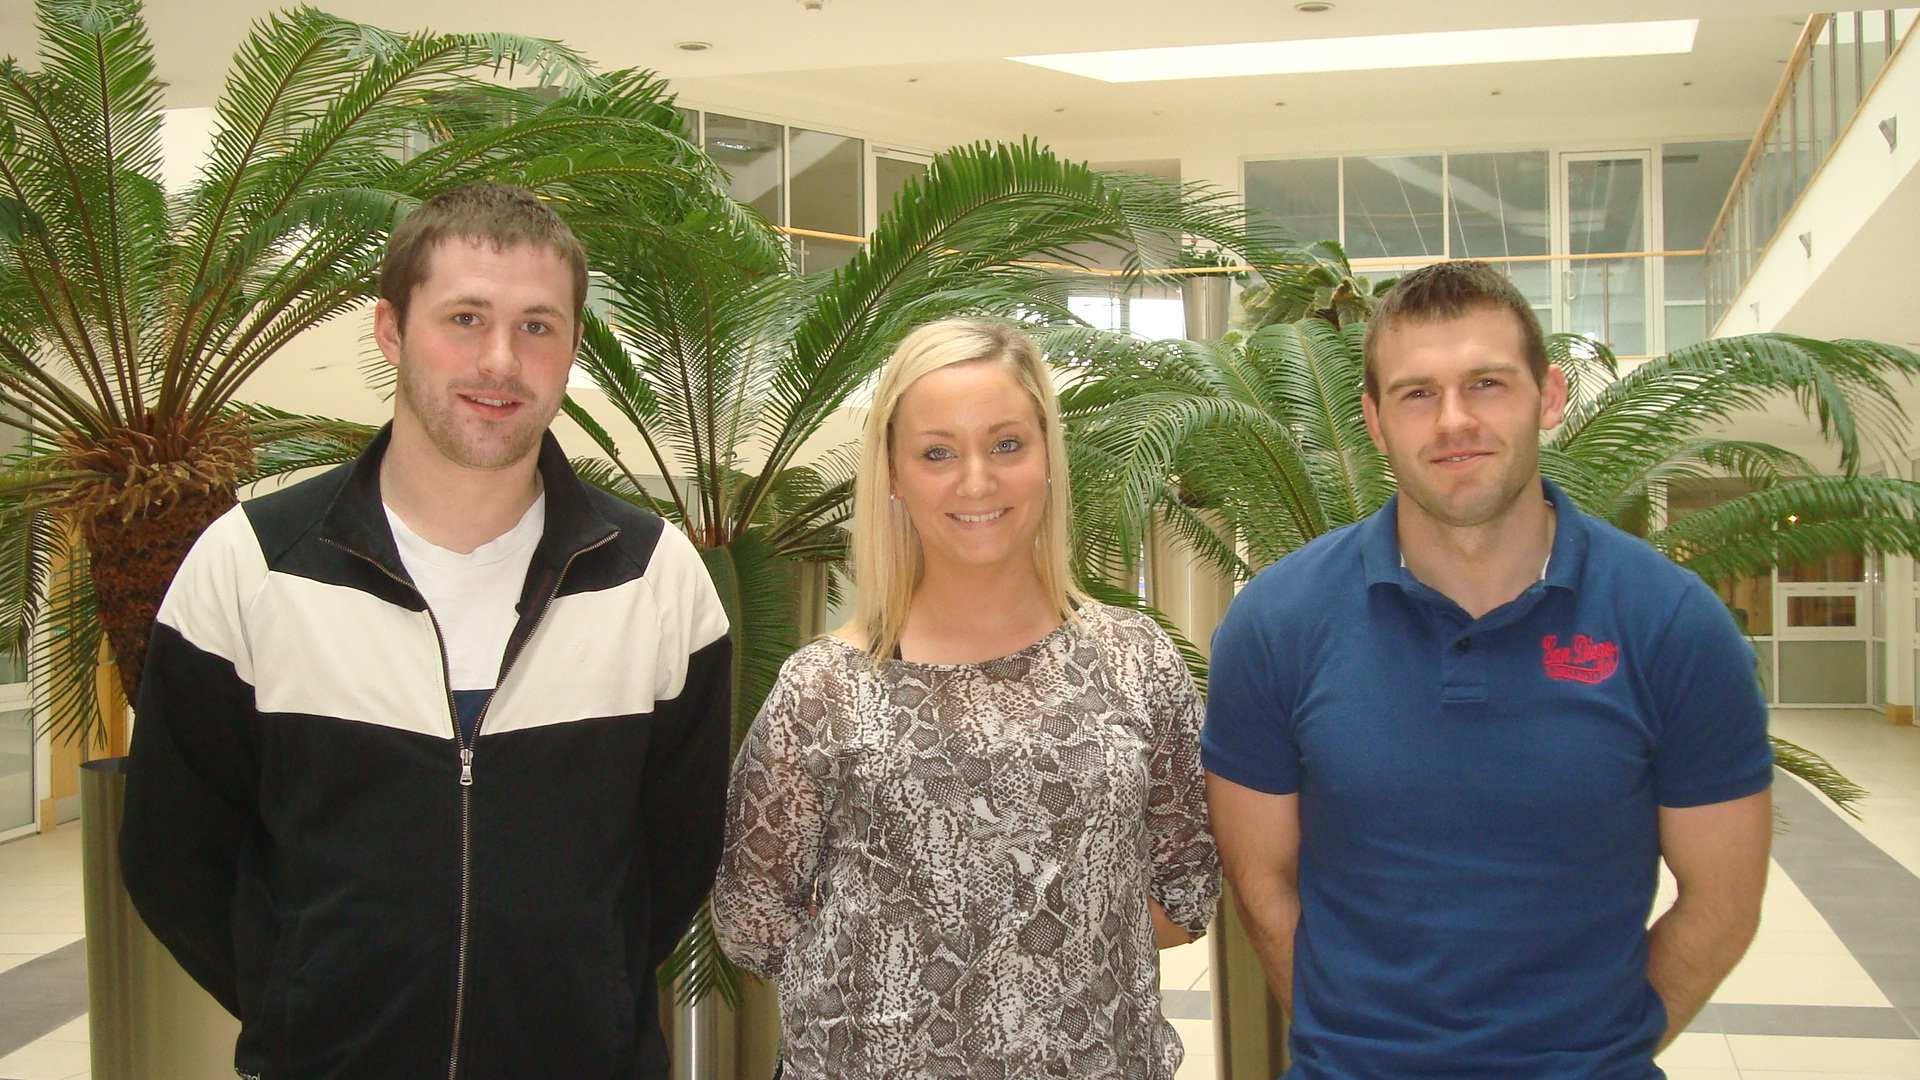 Call Management employees: Kieran Howlin, Lisa O'Sullivan and Adrian Murphy